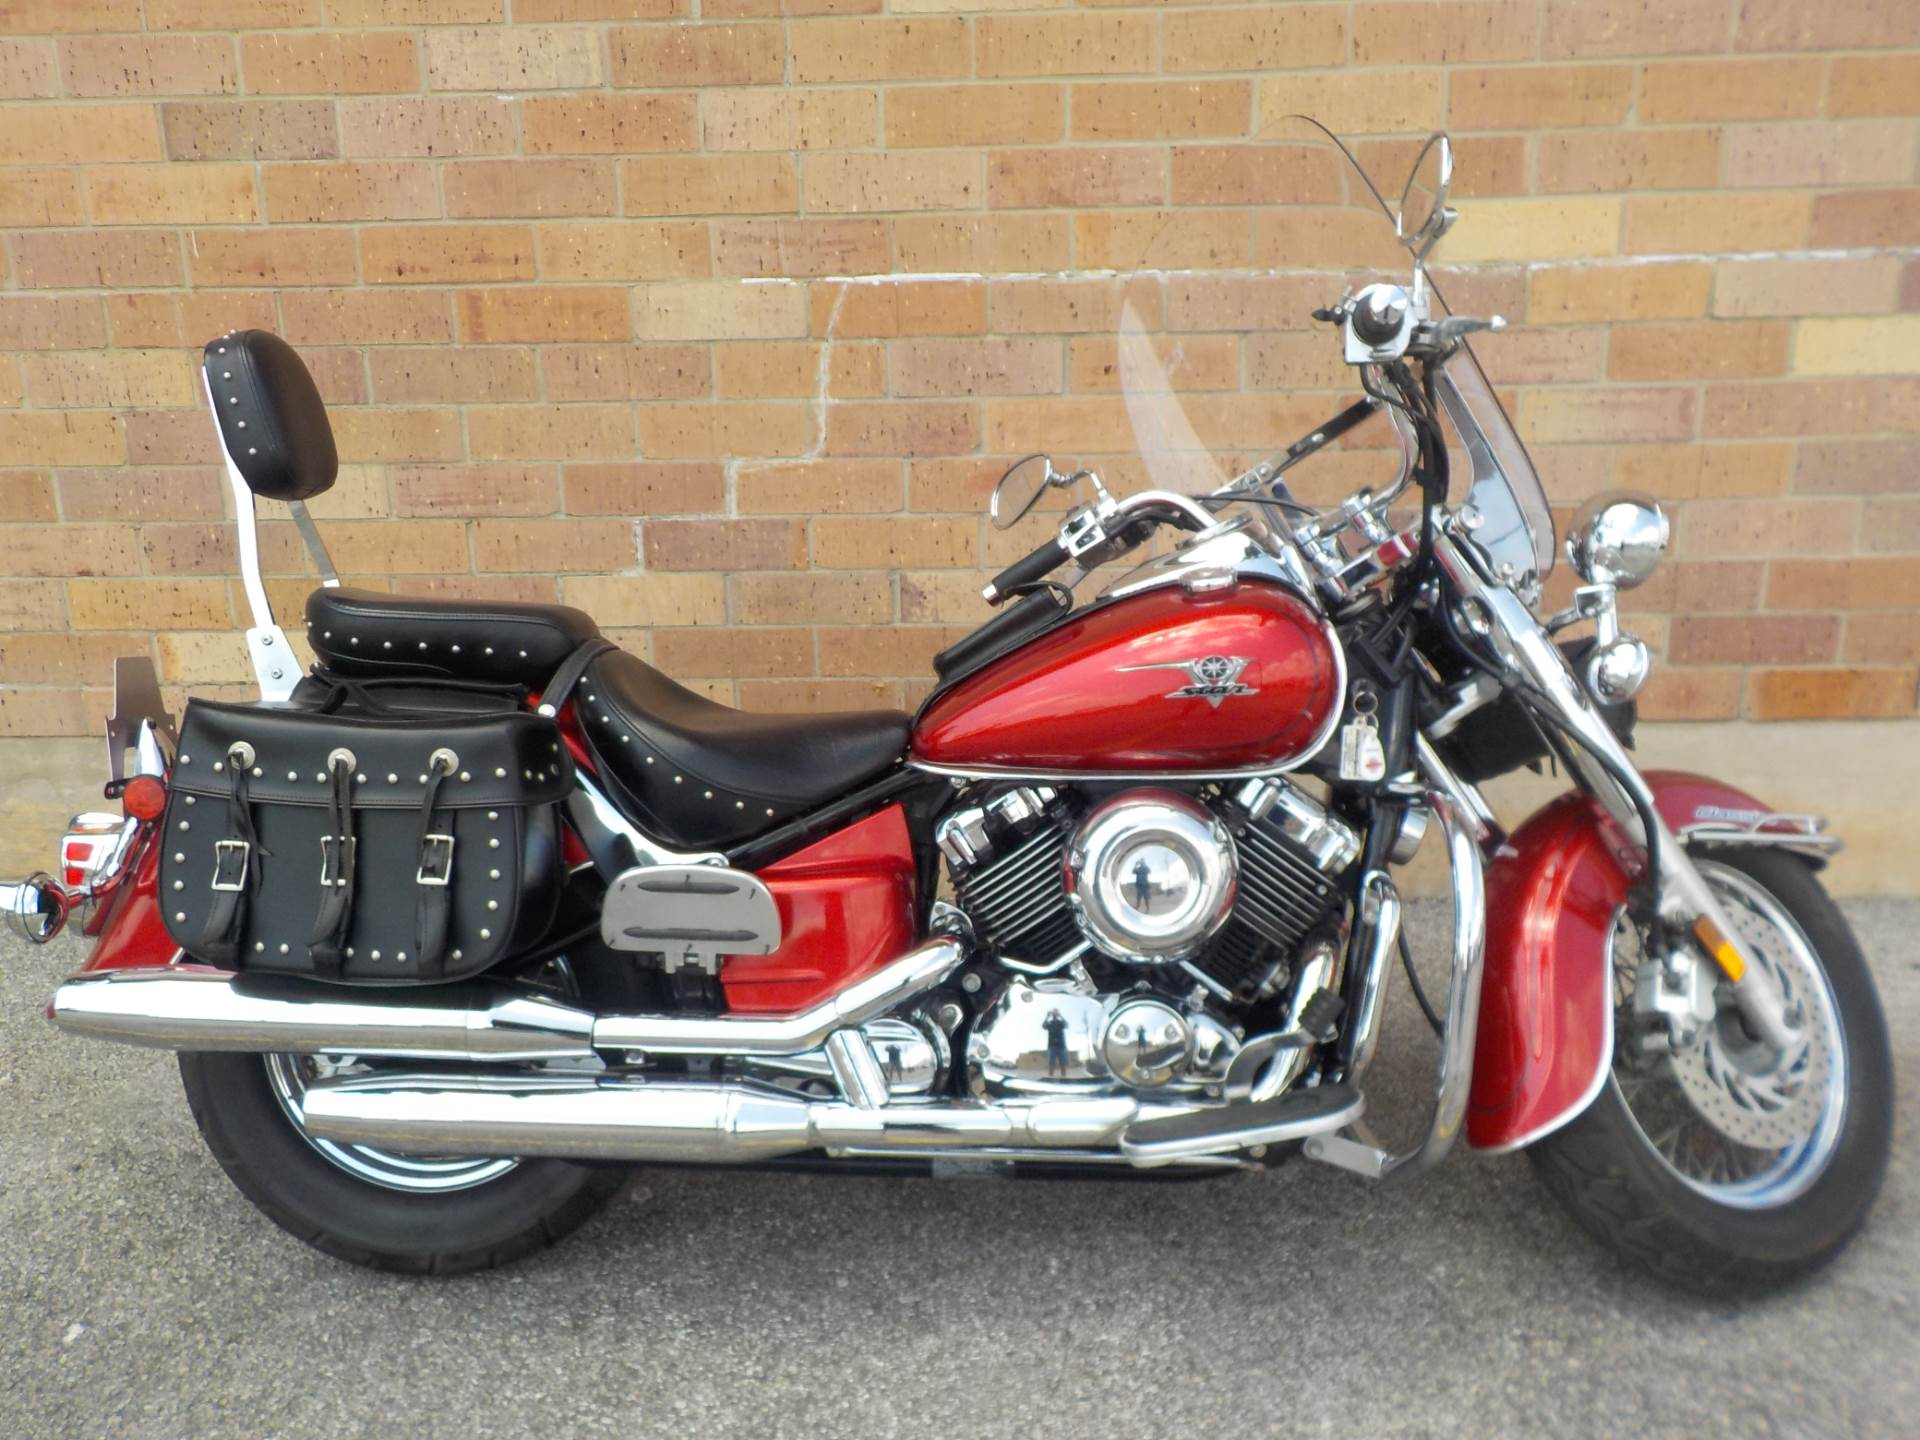 2010 Yamaha V Star 650 Classic in San Antonio, Texas